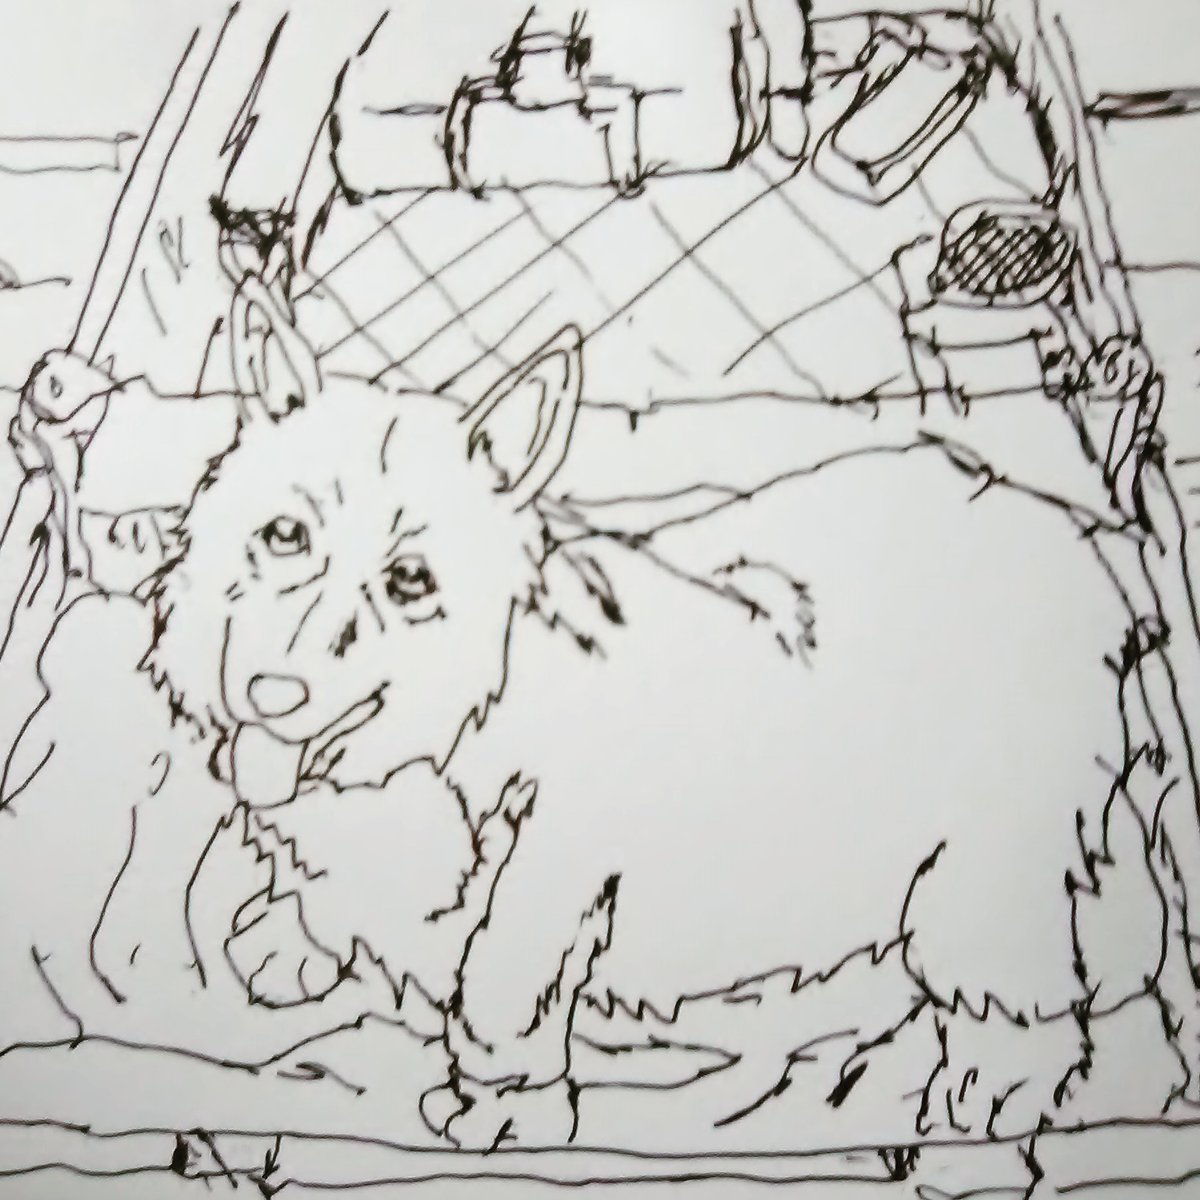 """#draweveryday2020 Ein, the Welsh Corgi/ """"data dog"""" from her 1st appearance in #CowboyBebop #anime #draweveryday pic.twitter.com/t4jT8oZa8D"""